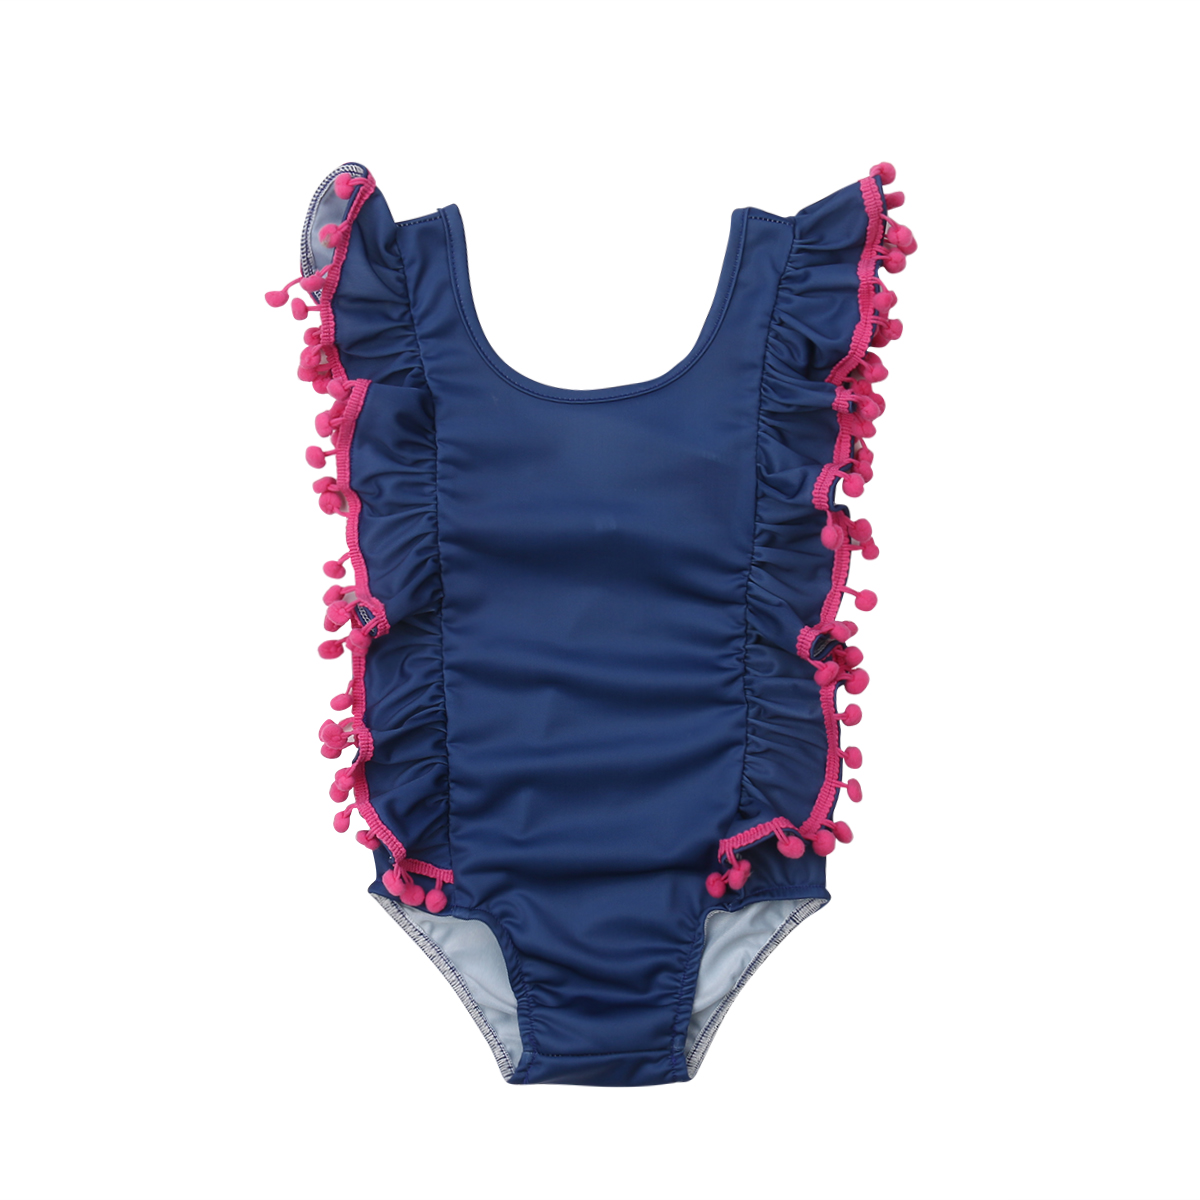 Asda Baby Girl Swimming Costume